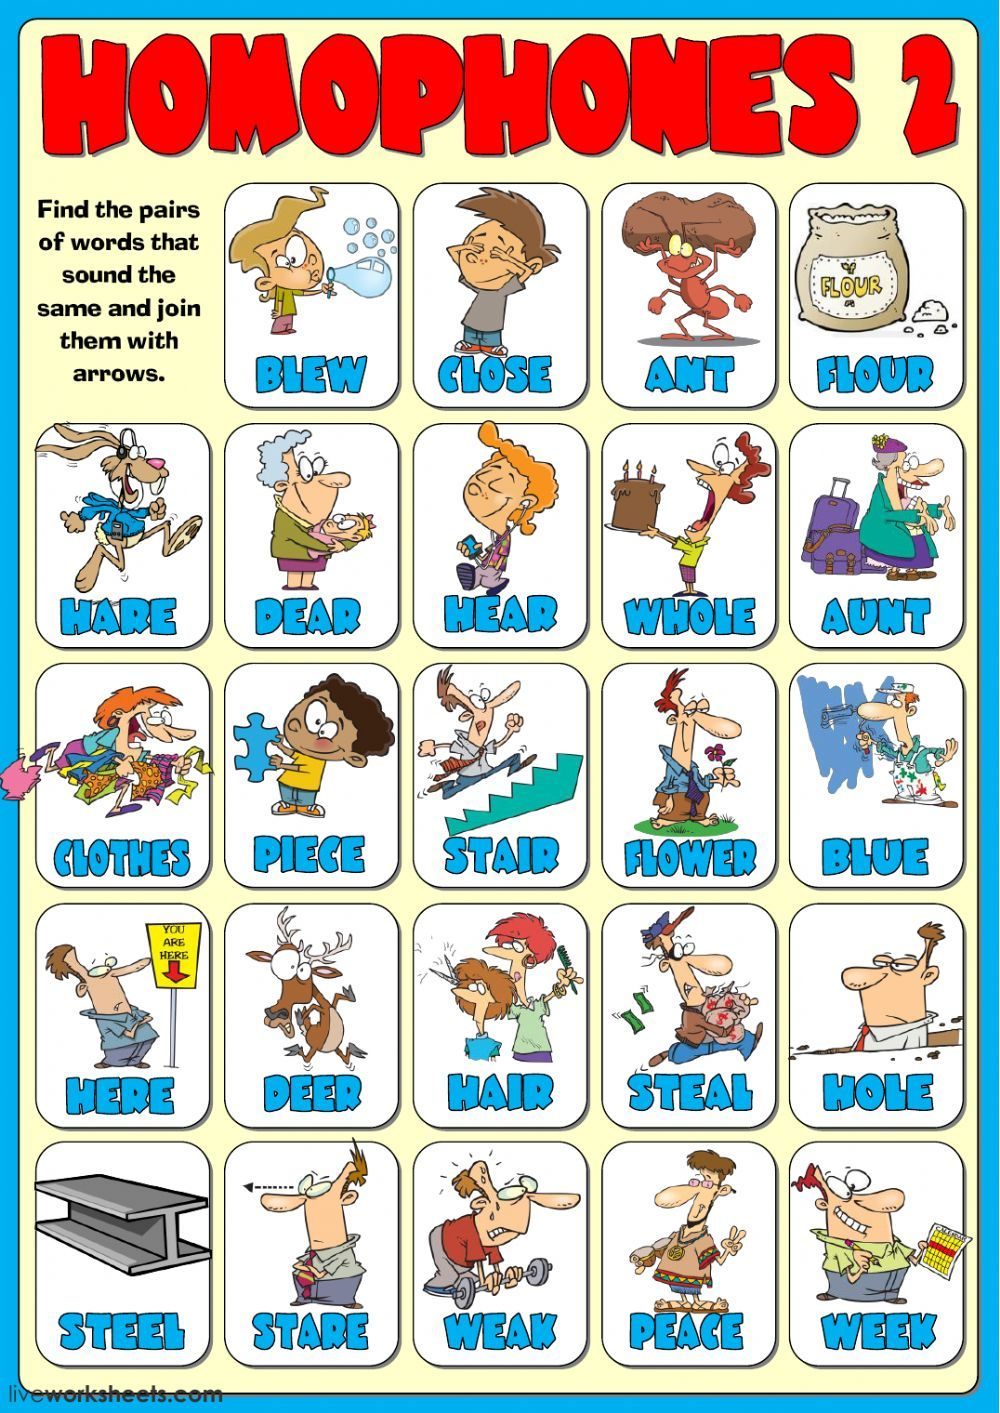 Homophones Interactive And Downloadable Worksheet You Can Do The Exercises Online Or Download The Worksh Homophones Homophones Worksheets 2nd Grade Worksheets [ 1413 x 1000 Pixel ]